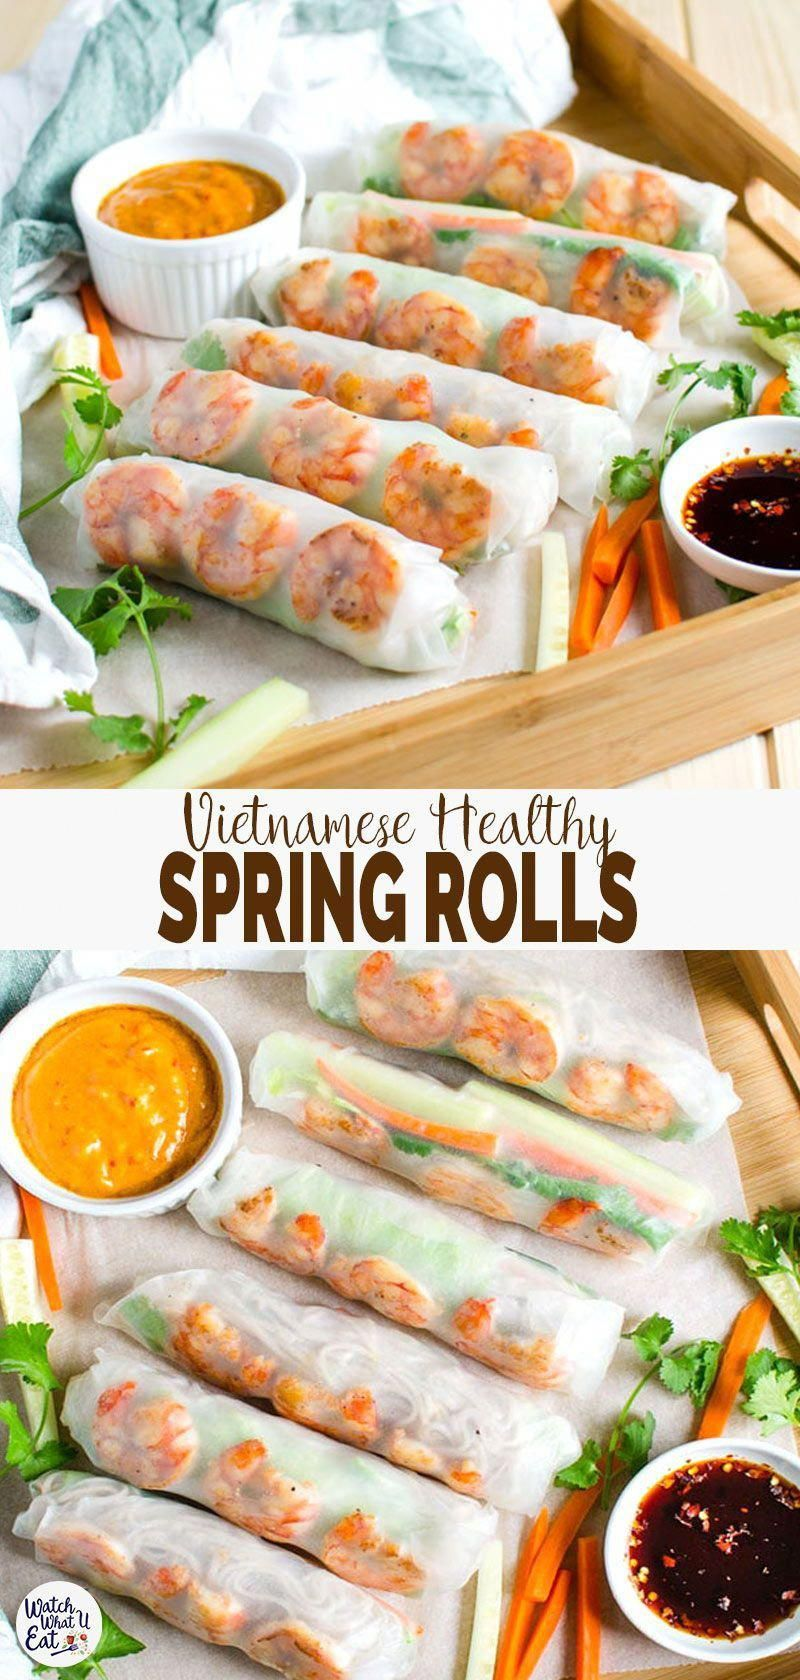 Vietnamese healthy spring rolls with creamy peanut butter sauce are a perfect treat to yourself at home. 30 min flavorful, healthy rolls for lunch or dinner.| #watchwhatueat #Vietnamese #springrolls #healthyrecipes Dinner Recipes #BestFoodsForRapidWeightLoss